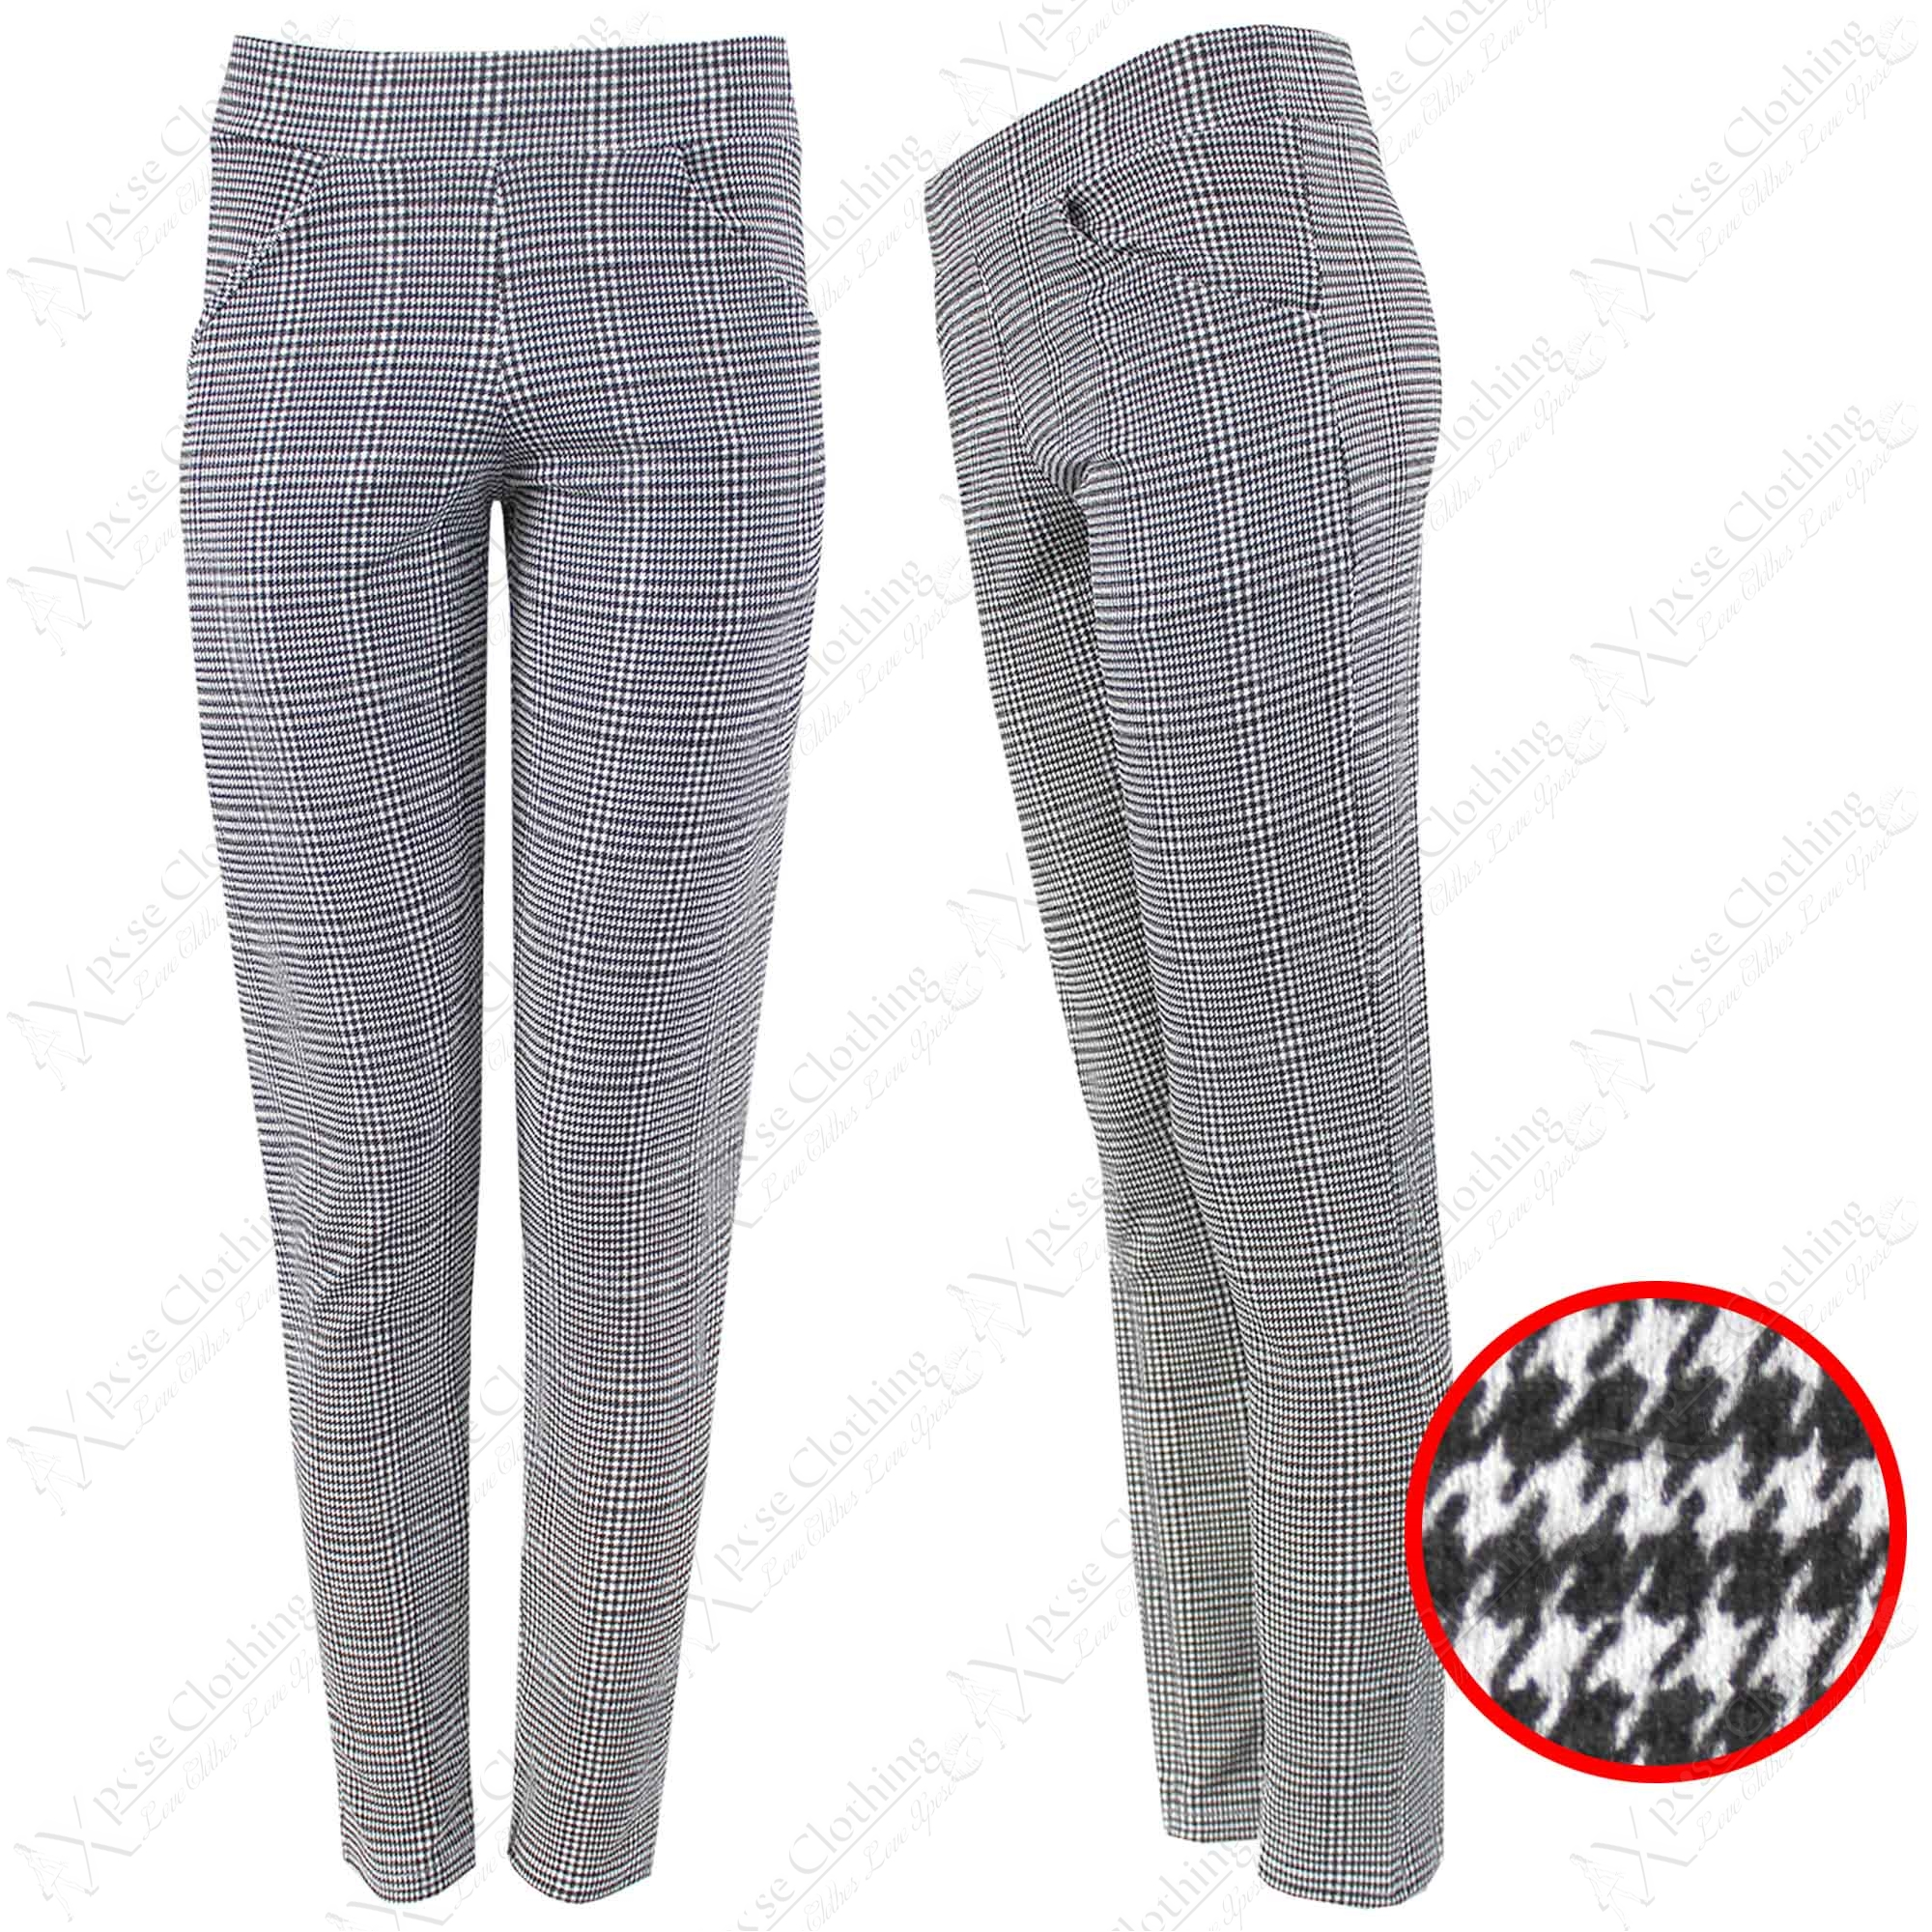 MM6 Wide-Leg Check Jersey Trousers € With a varied array of culottes, joggers and leggings, our women's trousers edit has it all. This carefully curated collection has everything from directional contemporary tailoring and wide leg trousers to festival-ready nostalgic vintage-inspired styles.